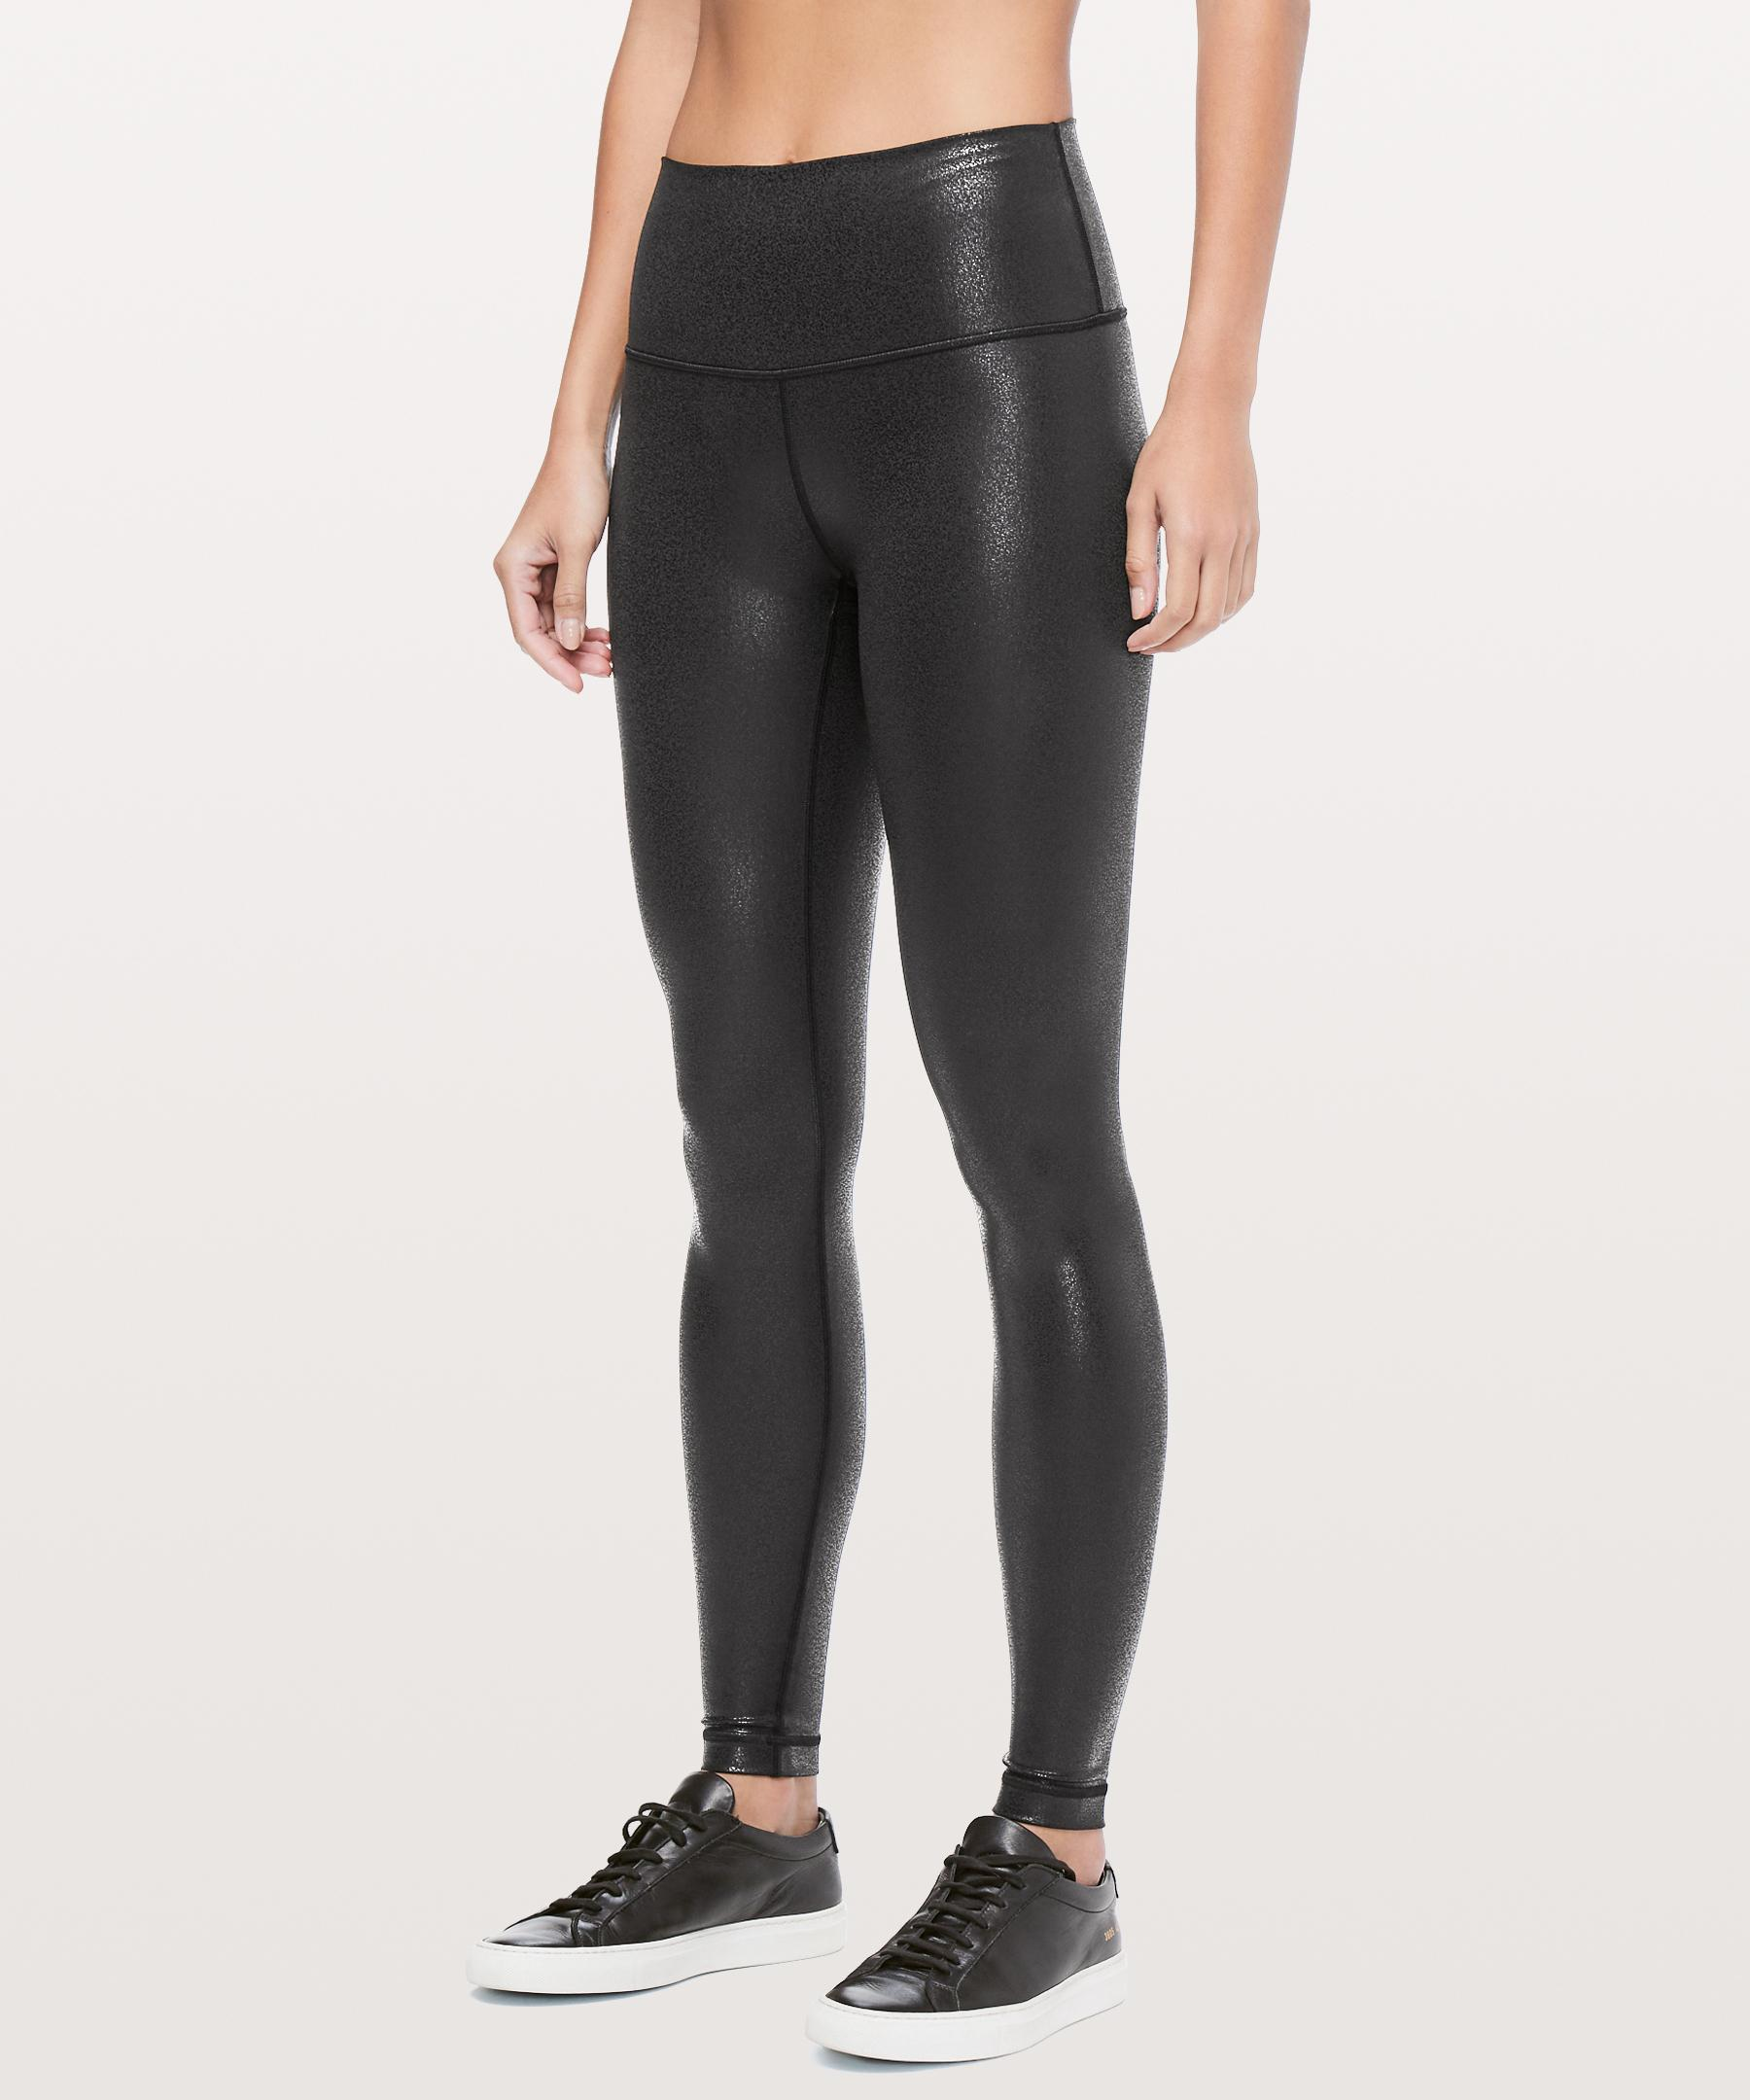 2394e1b093 lululemon athletica Wunder Under High-rise Tight *foil 28